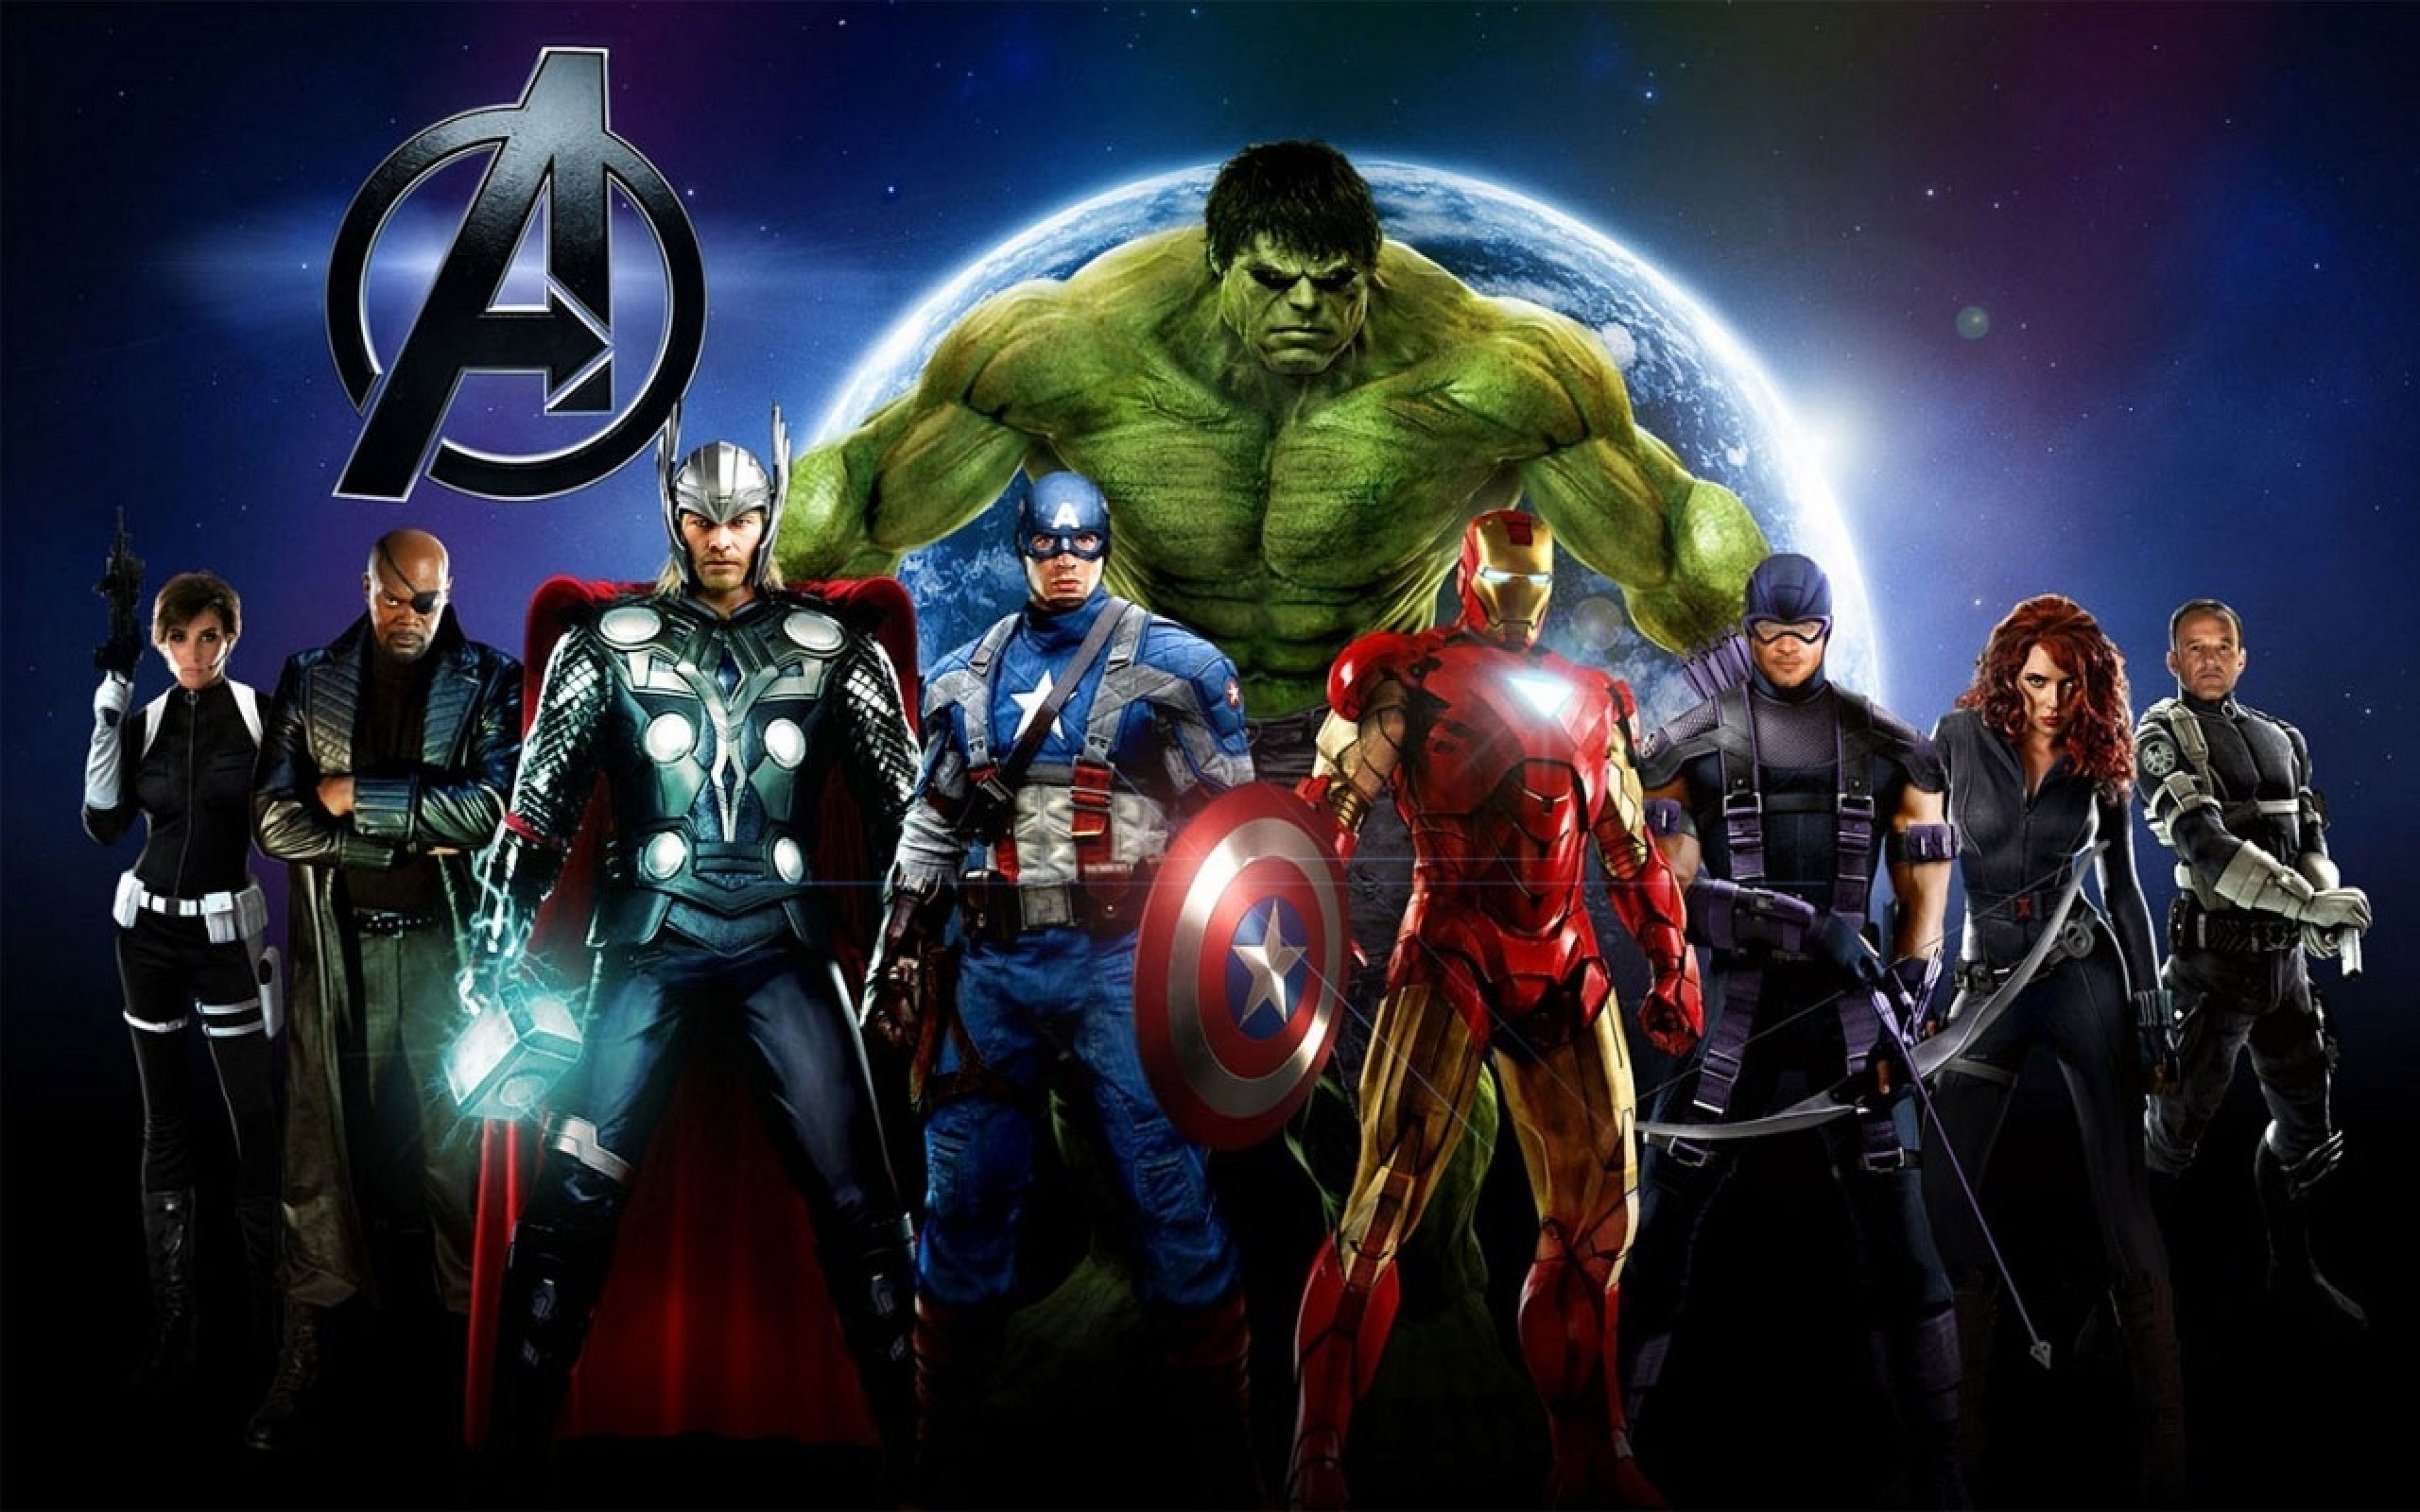 wallpaper.wiki-Marvel-Movies-Iphone-HD-Image-PIC-